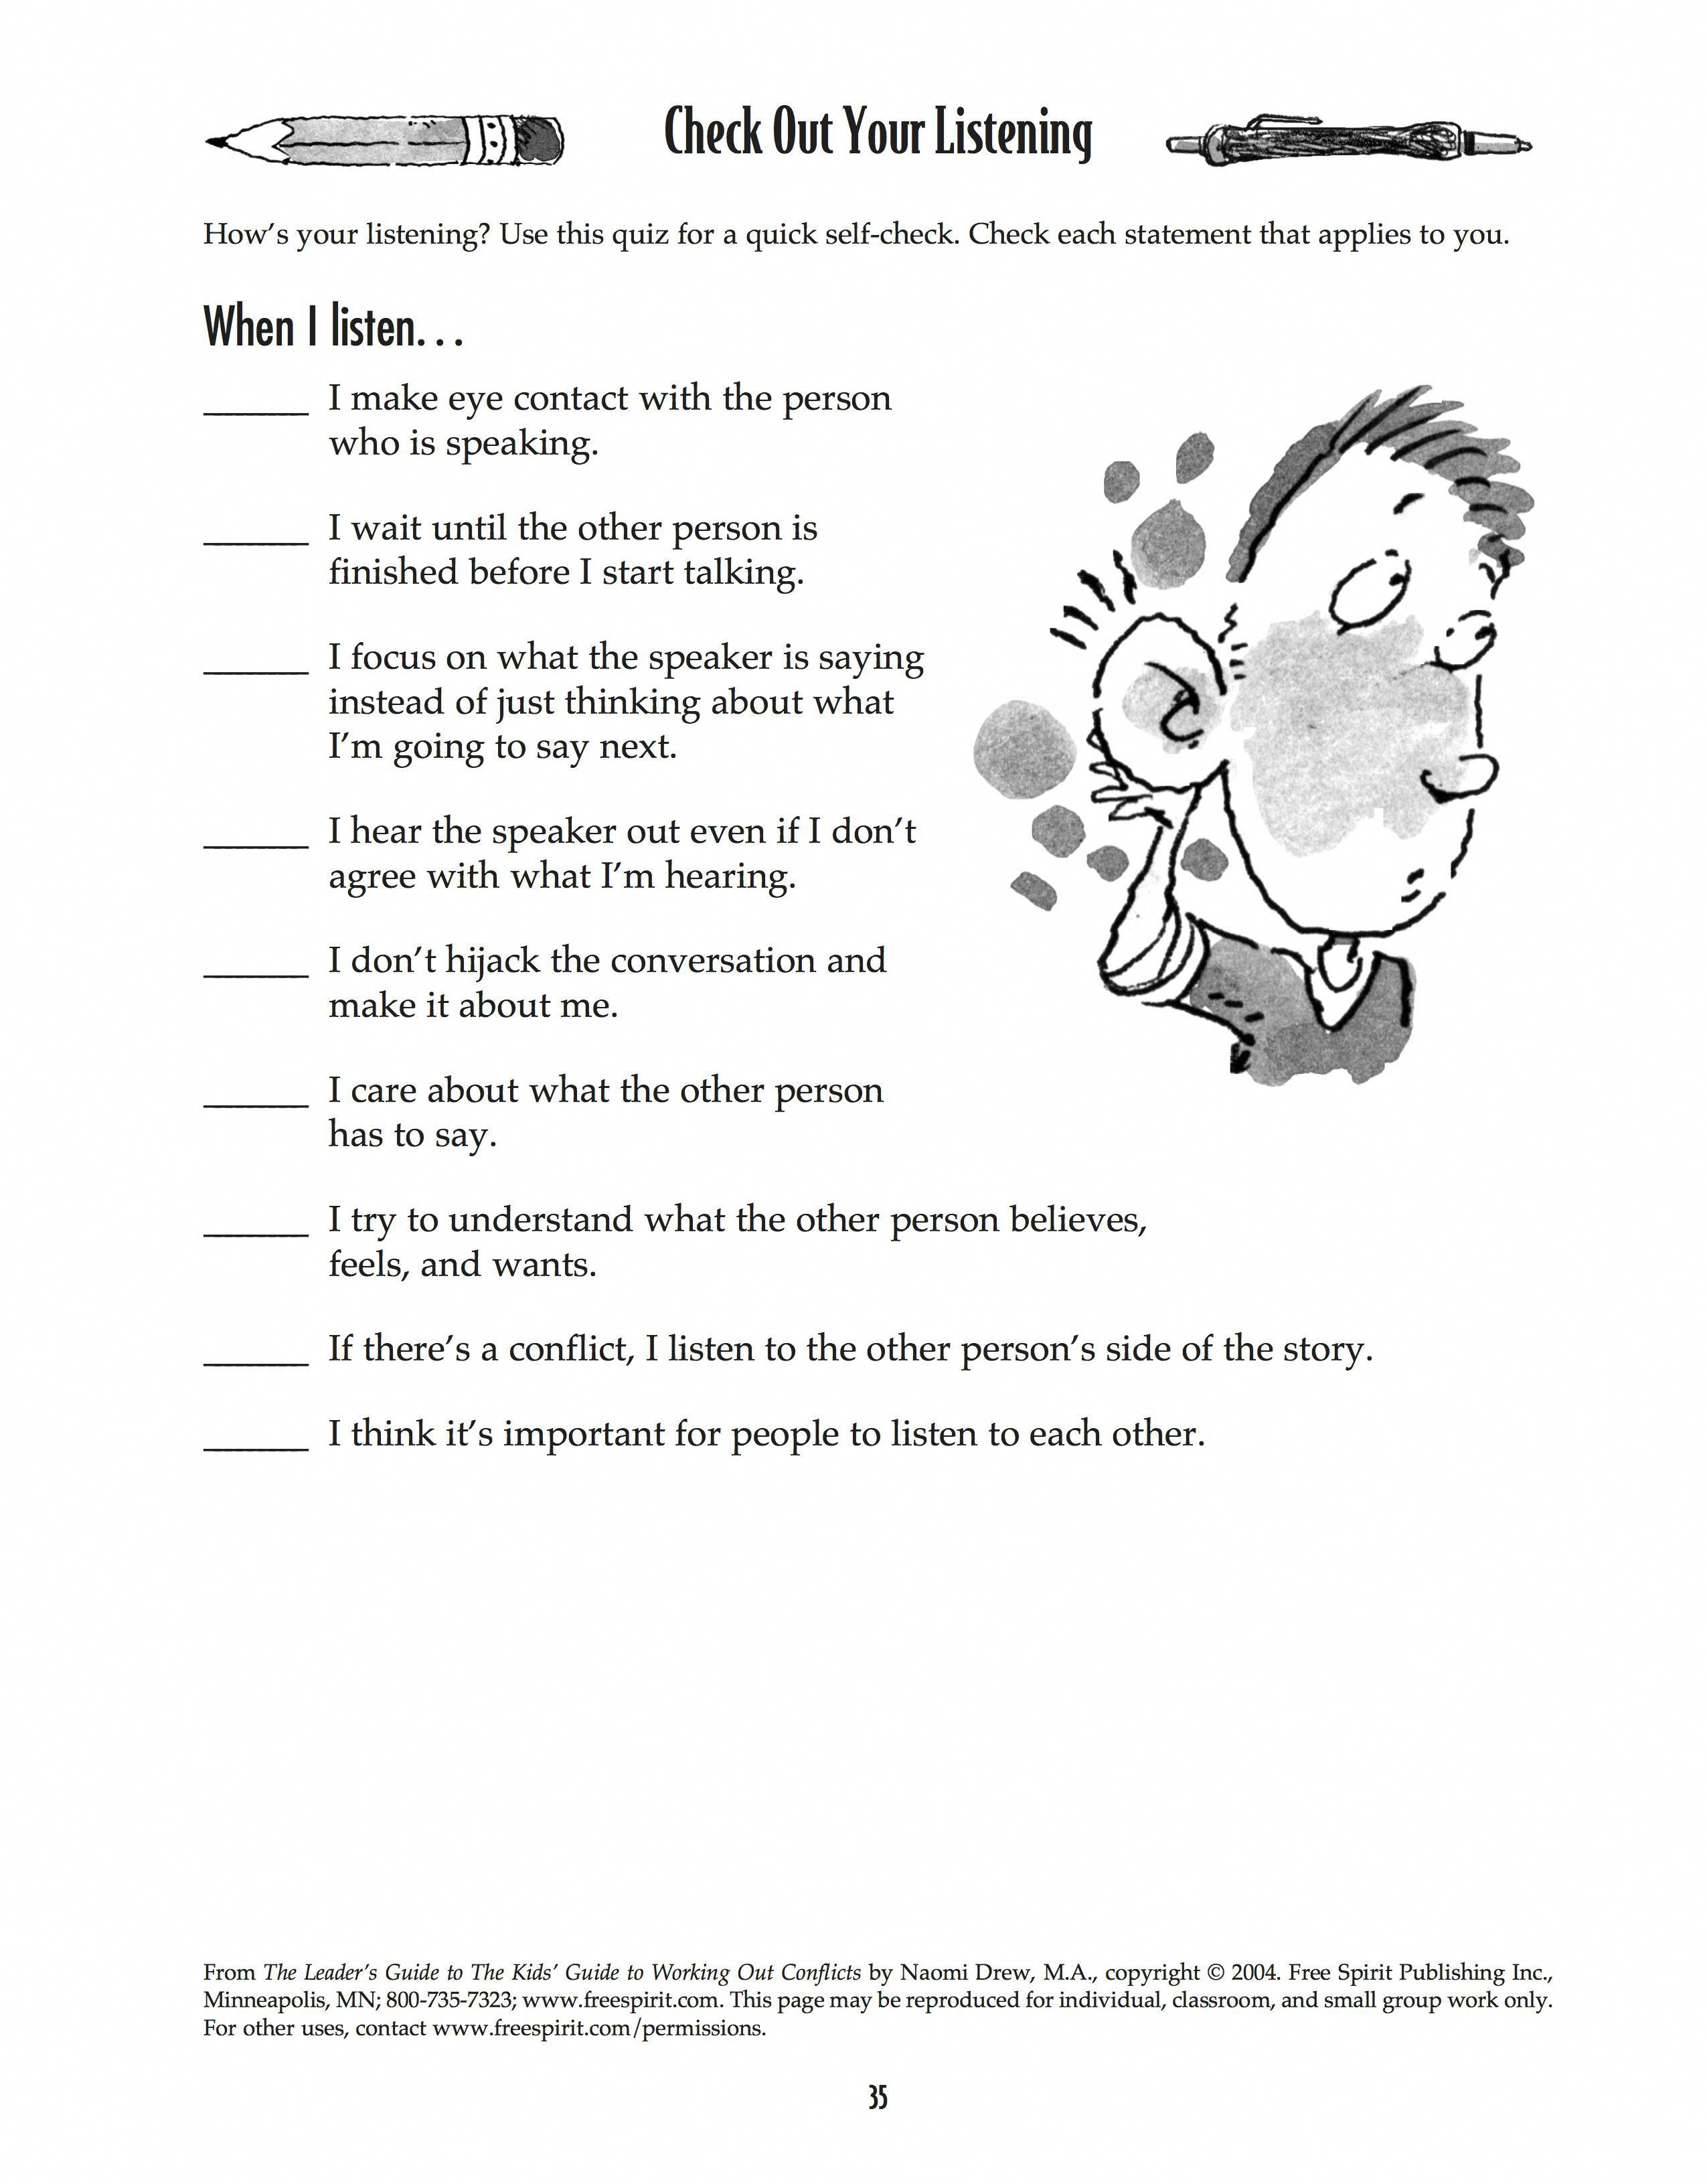 Download Check Out Your Listening A Free Printable From